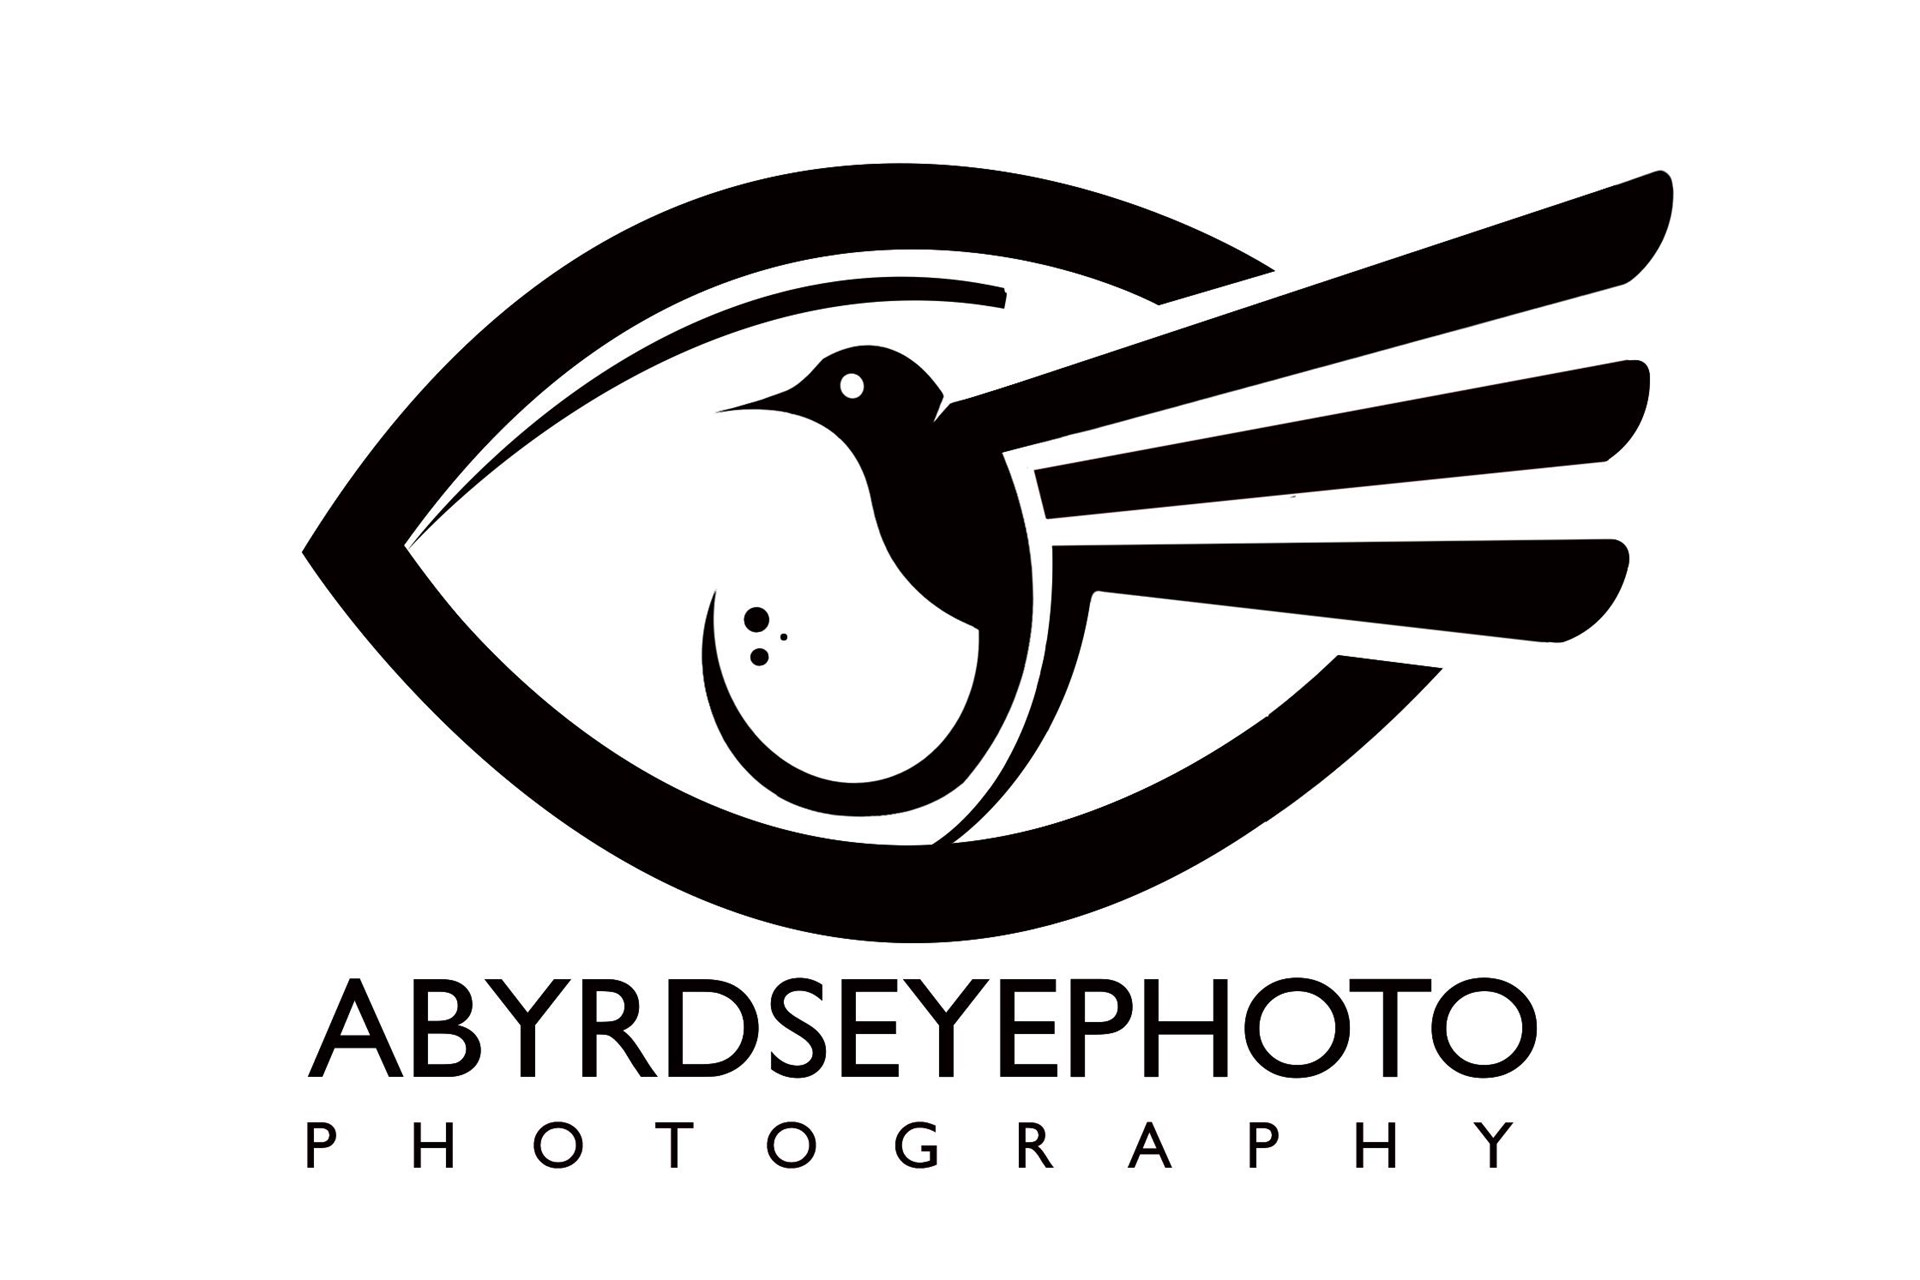 aByrdseyephoto Events